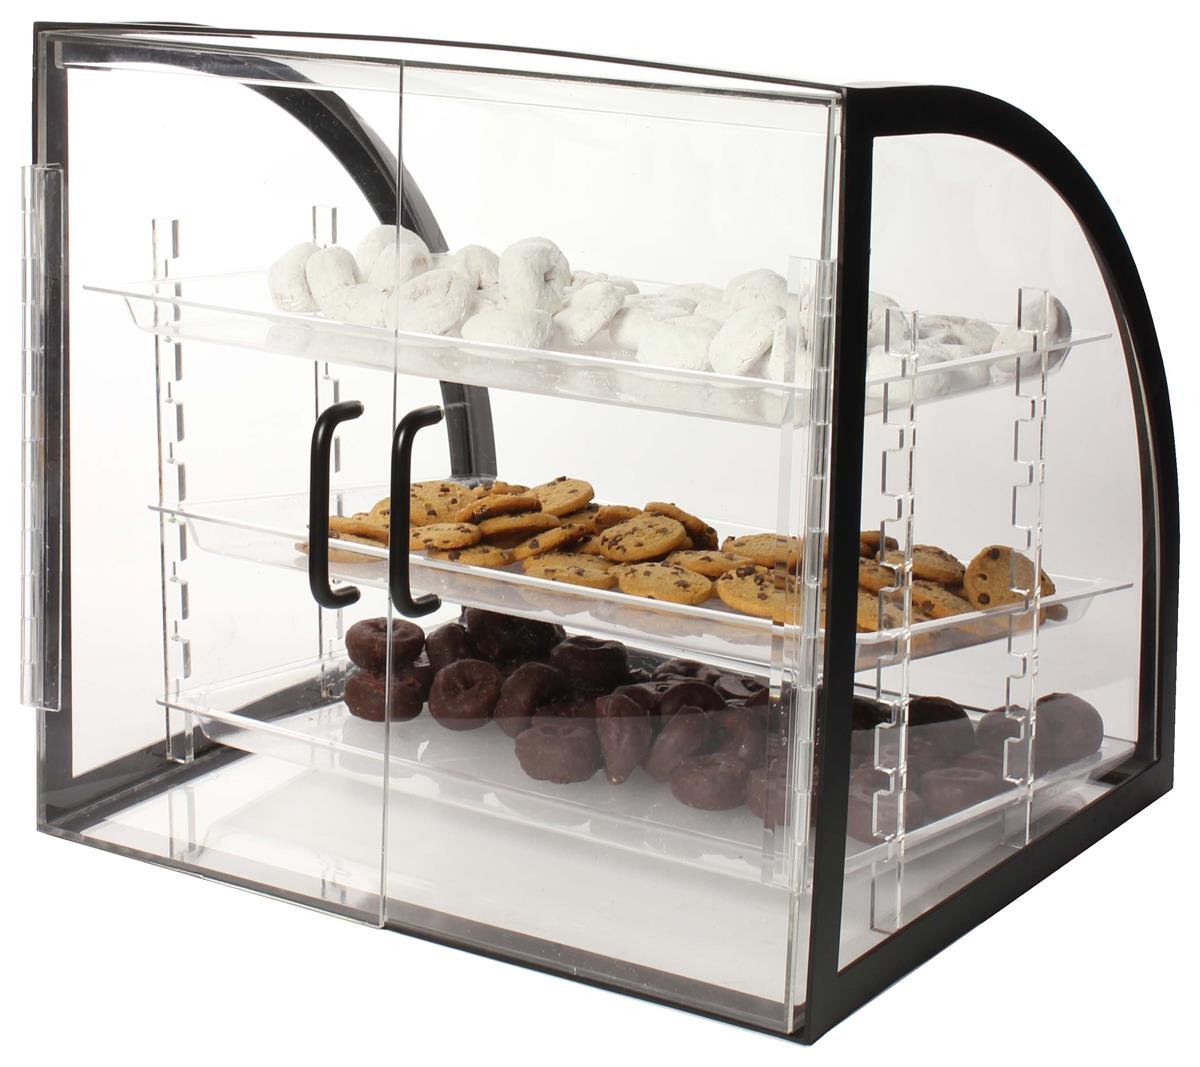 Amazon.com: Countertop Bakery Display Case, Clear Acrylic With ...